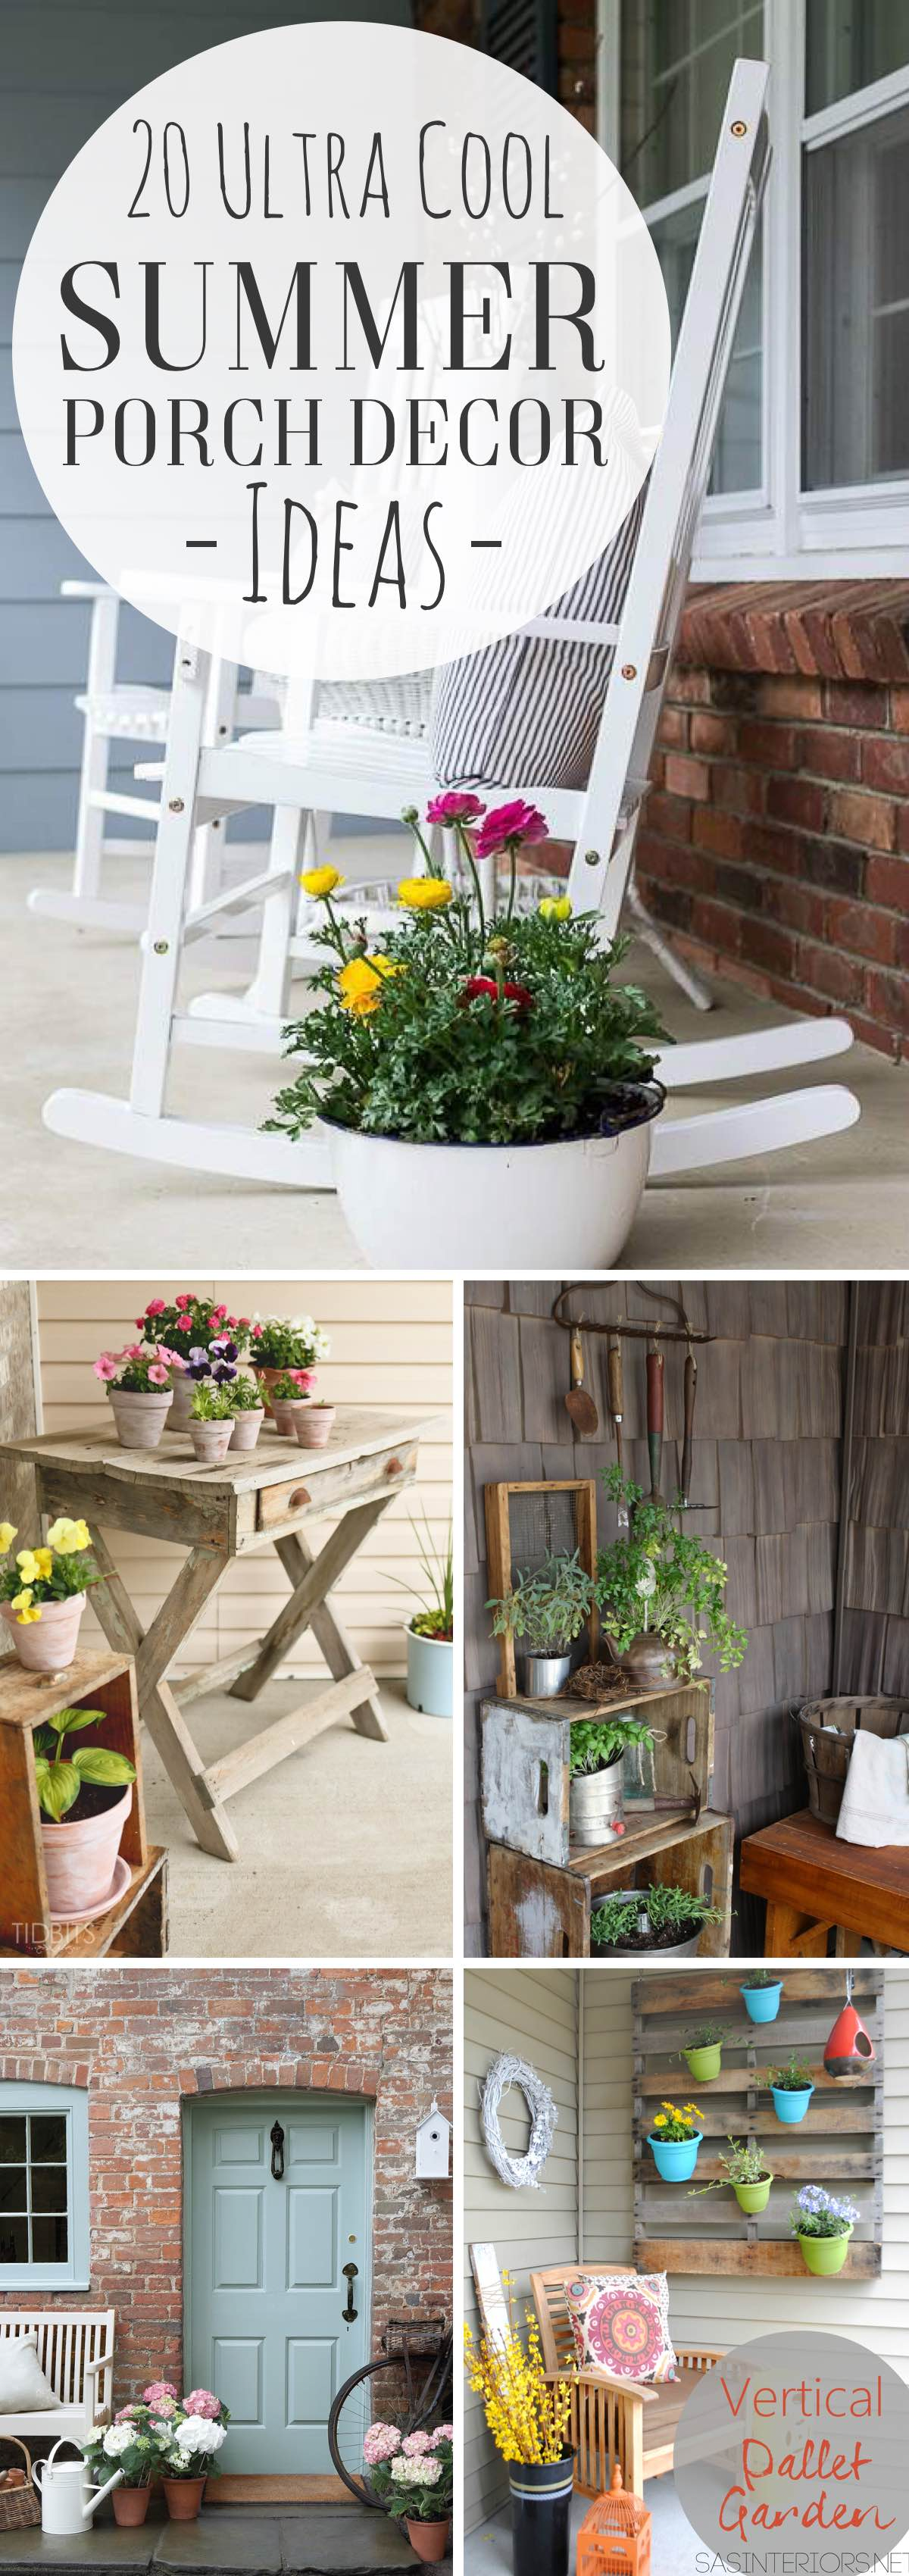 20 Ultra Cool and Refreshing Summer Porch Decor Ideas to Welcome the Season in Style